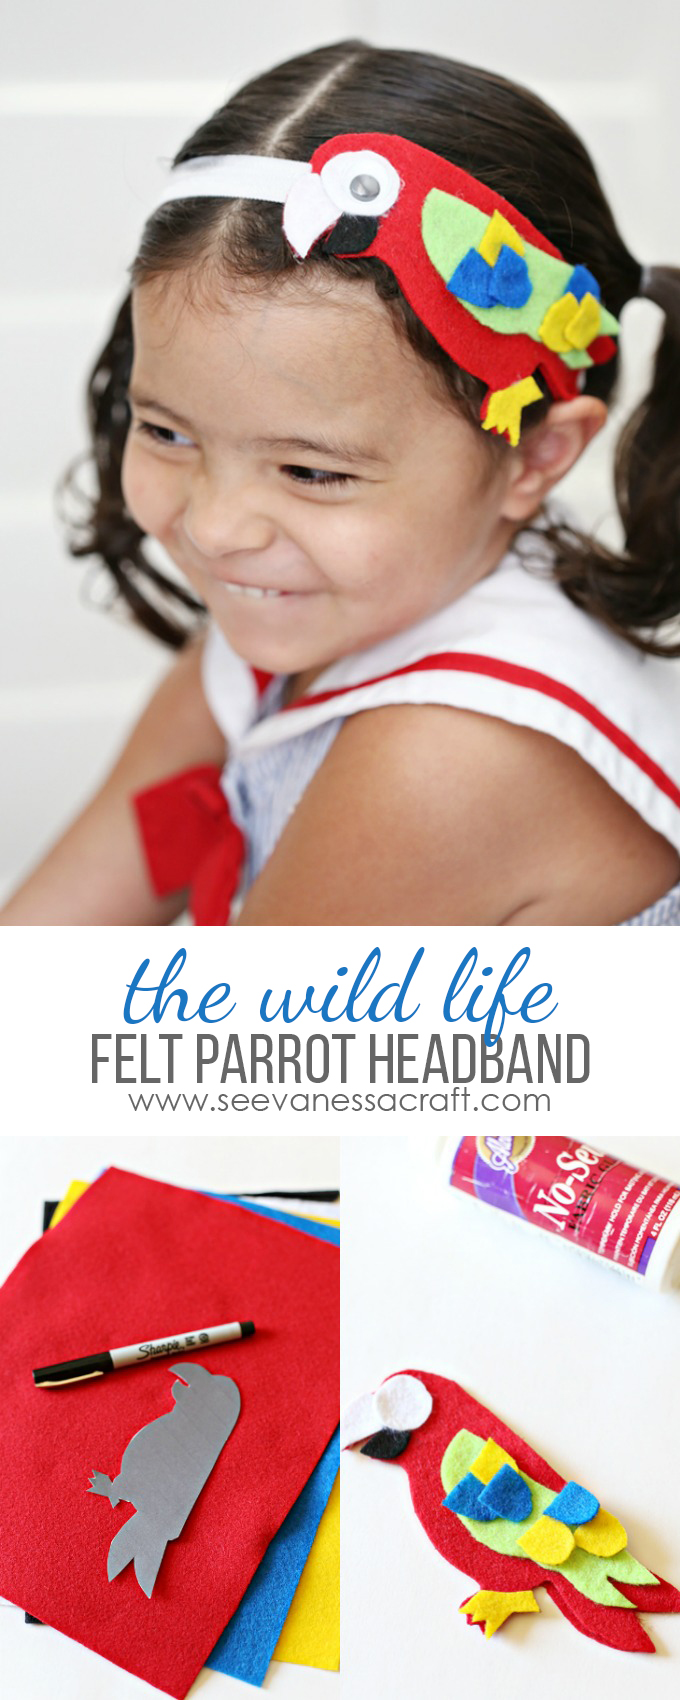 Parrot Headband Tutorial copy